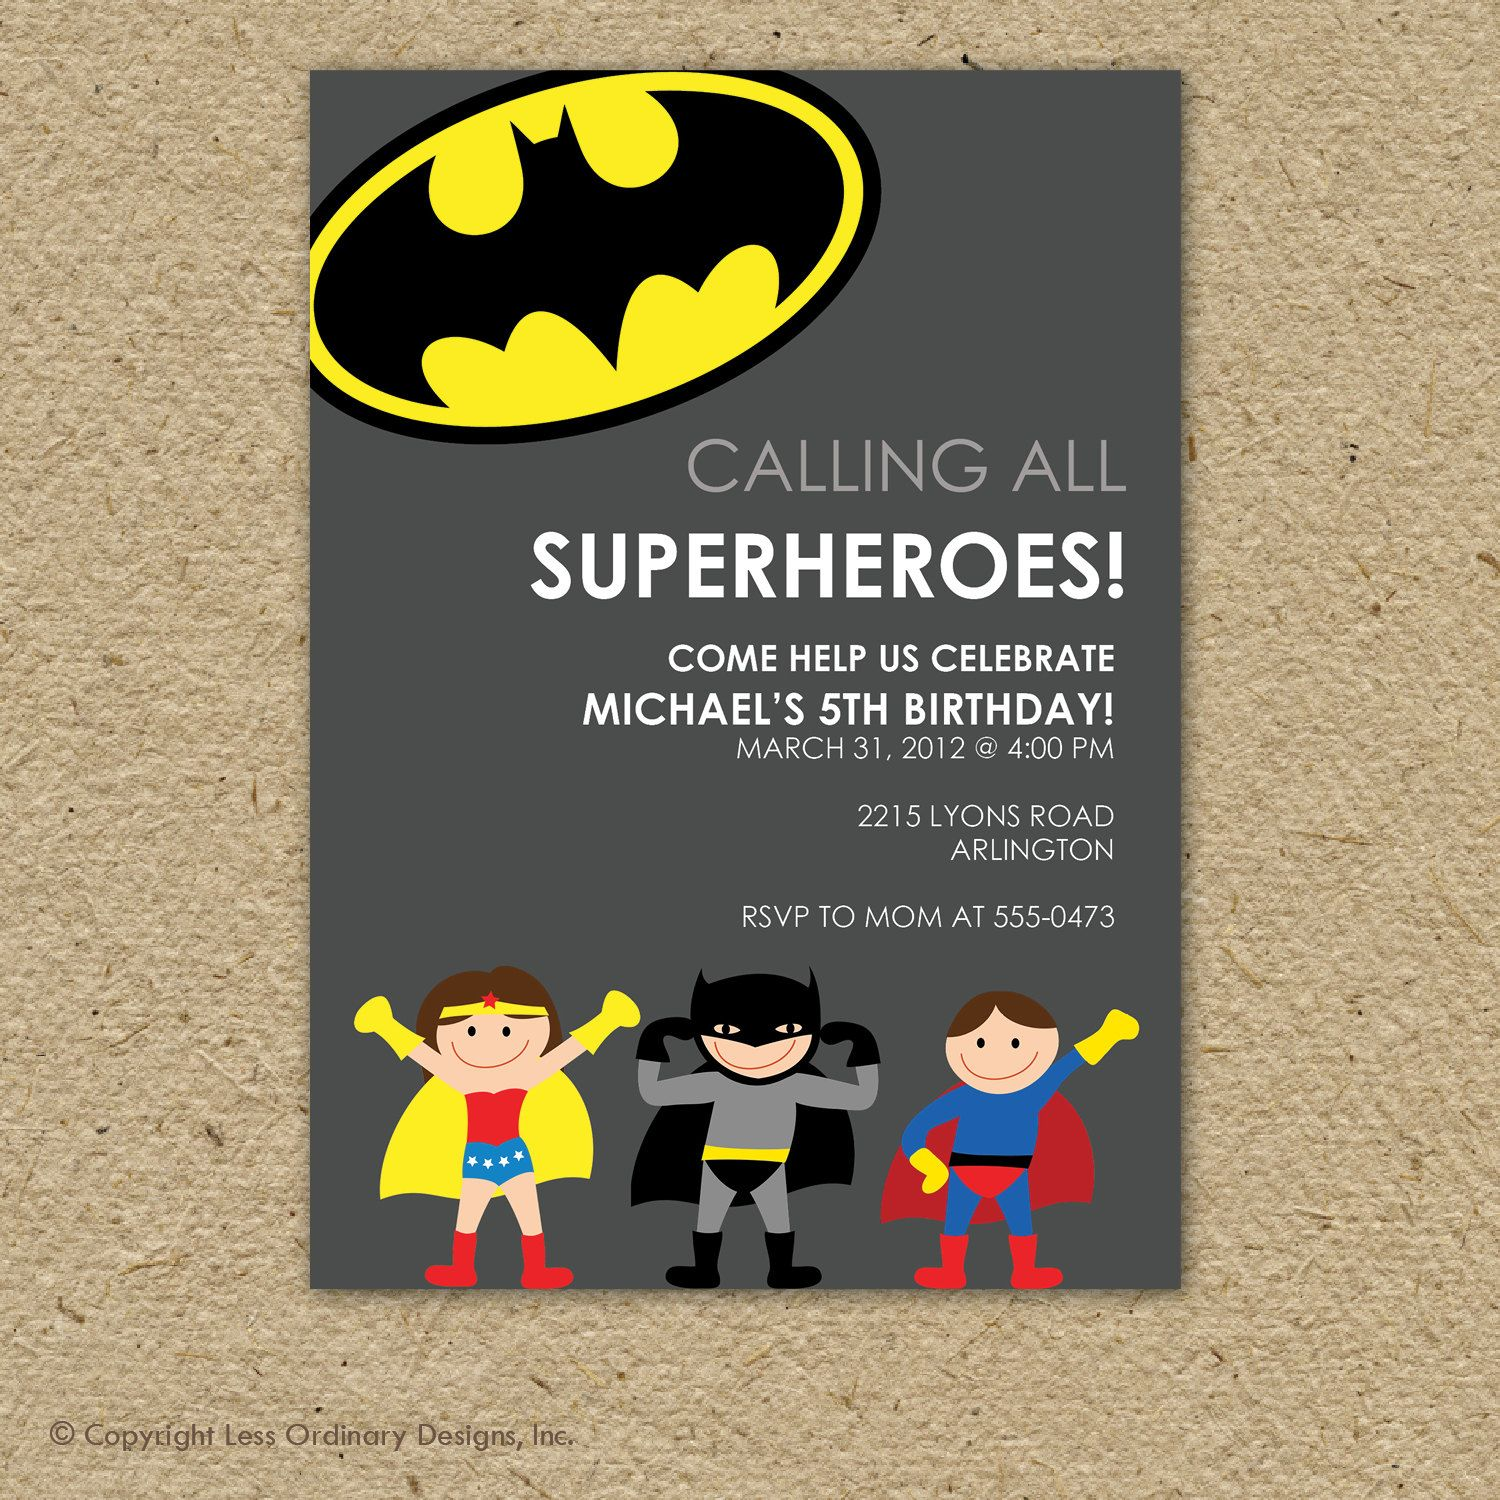 Custom super hero birthday party invitation - superman or batman ...